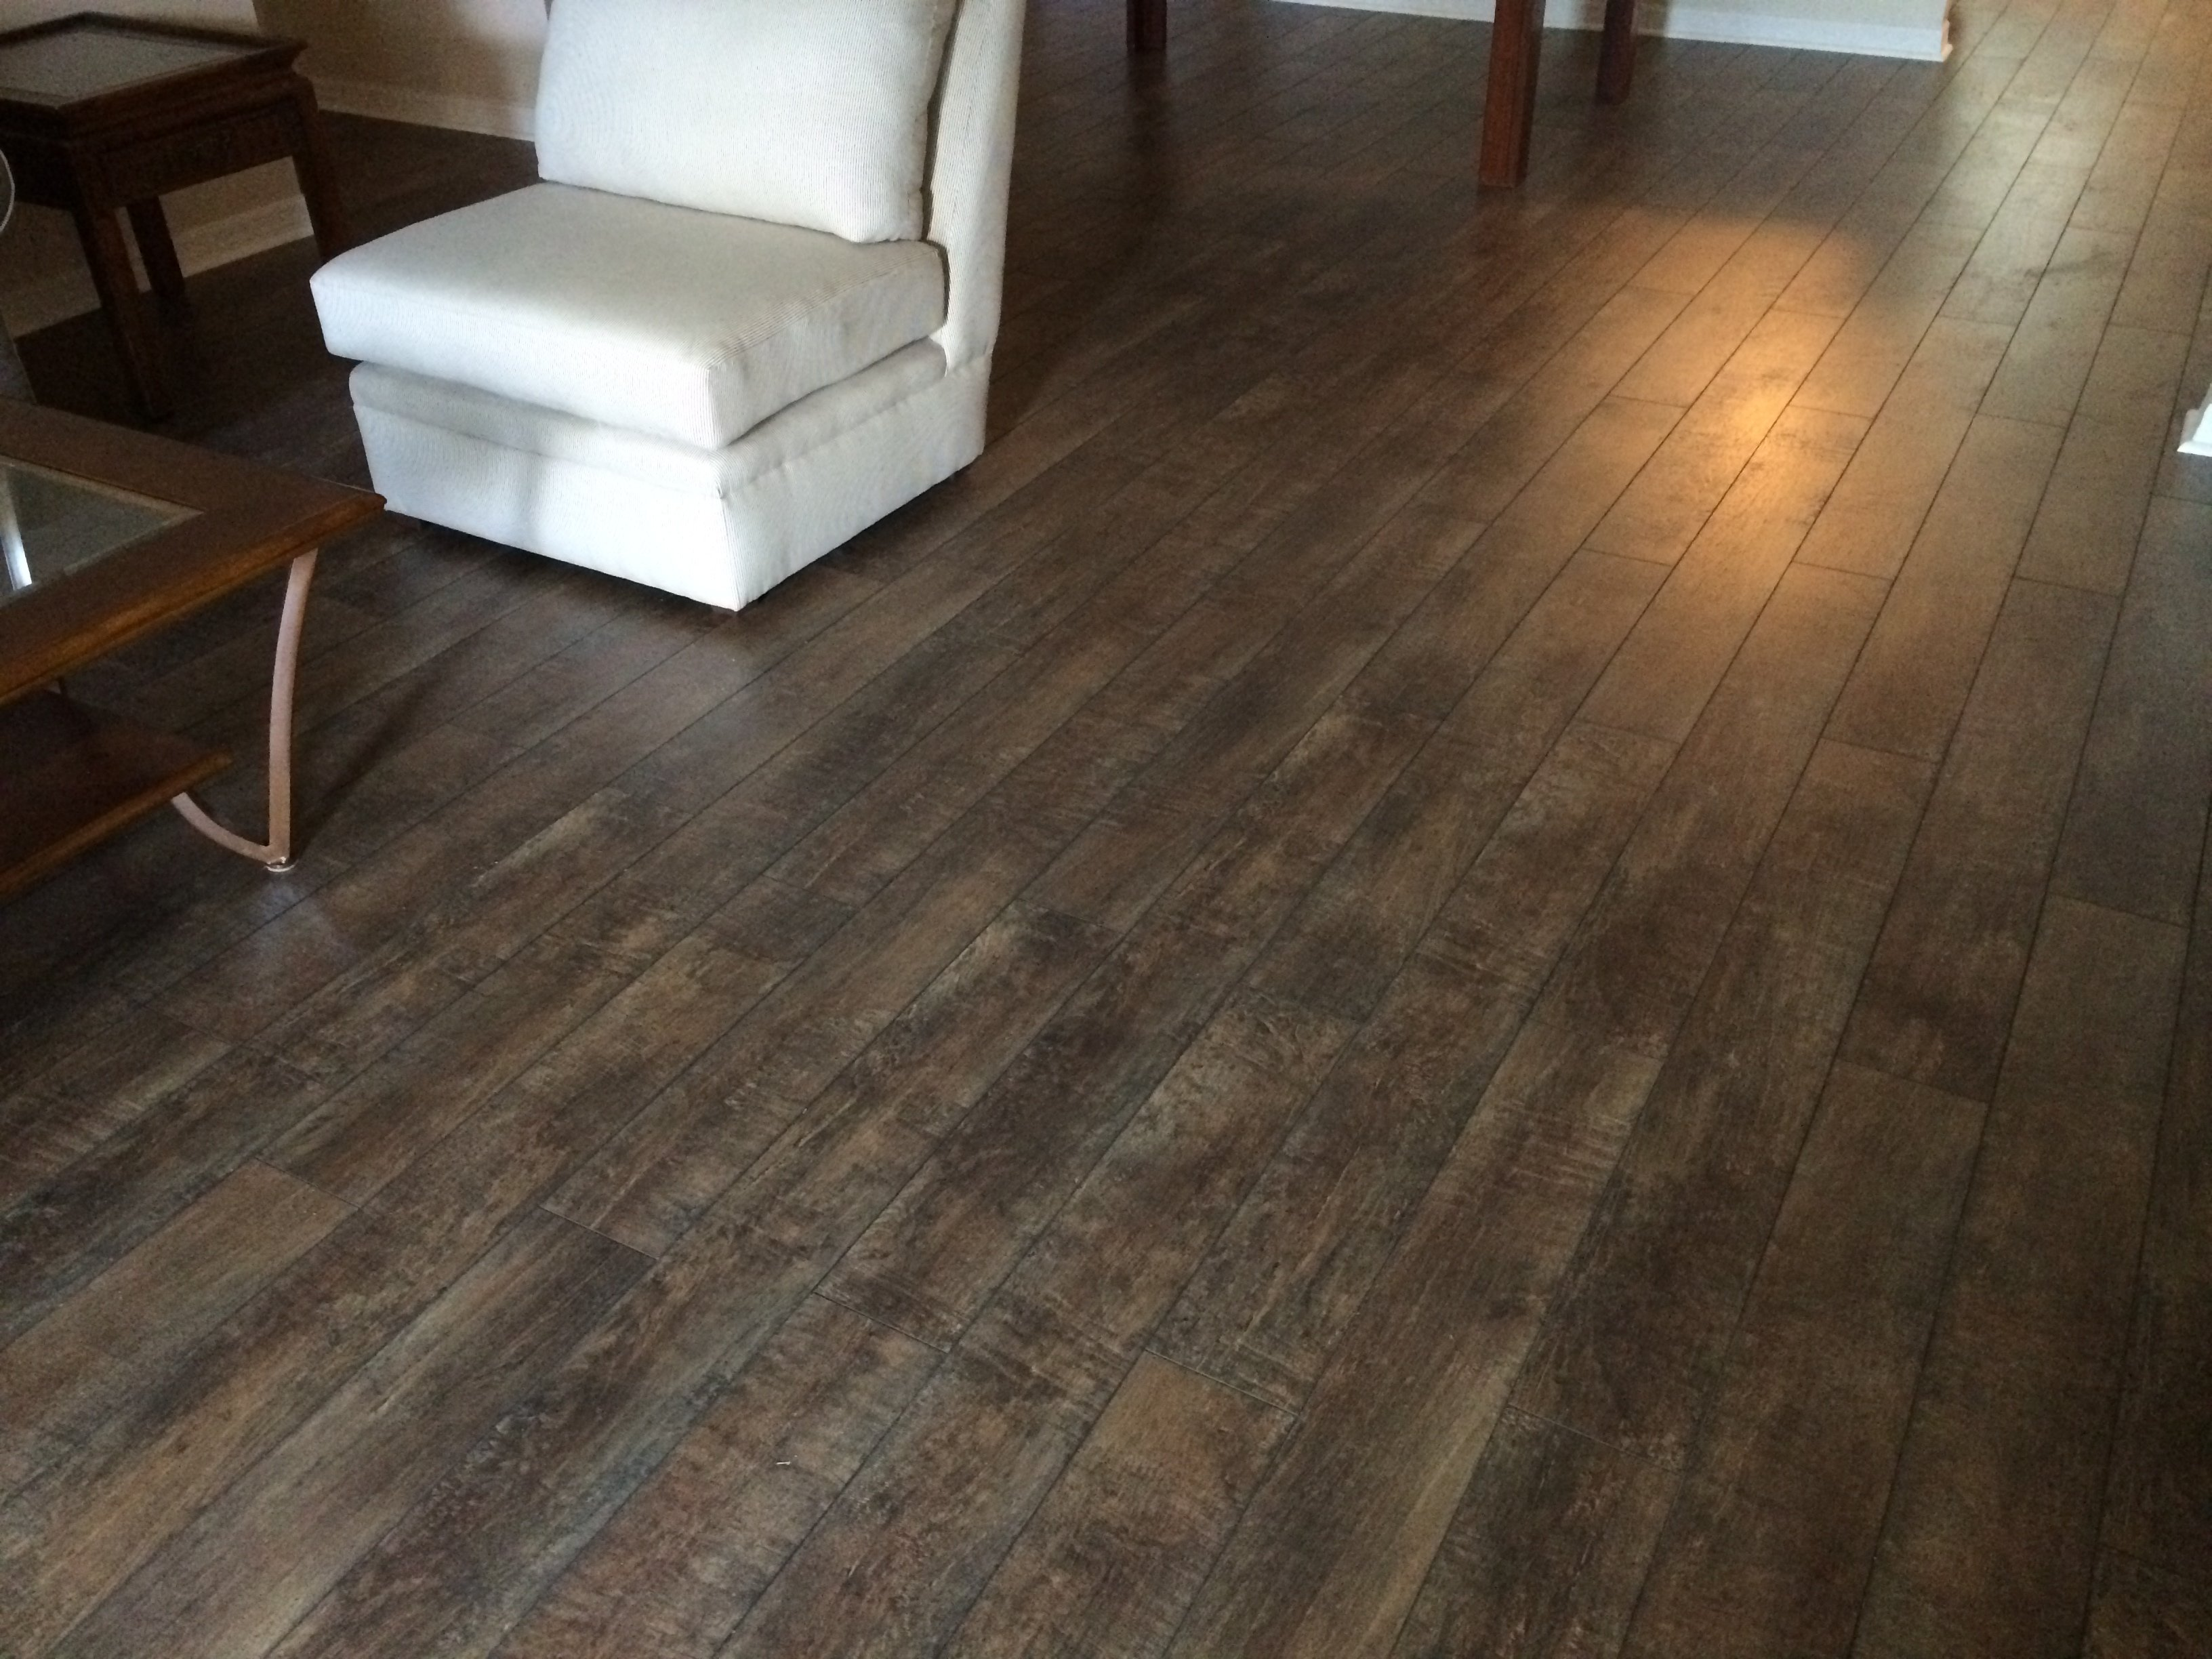 reclaimed hardwood flooring, re-stained and surfaced